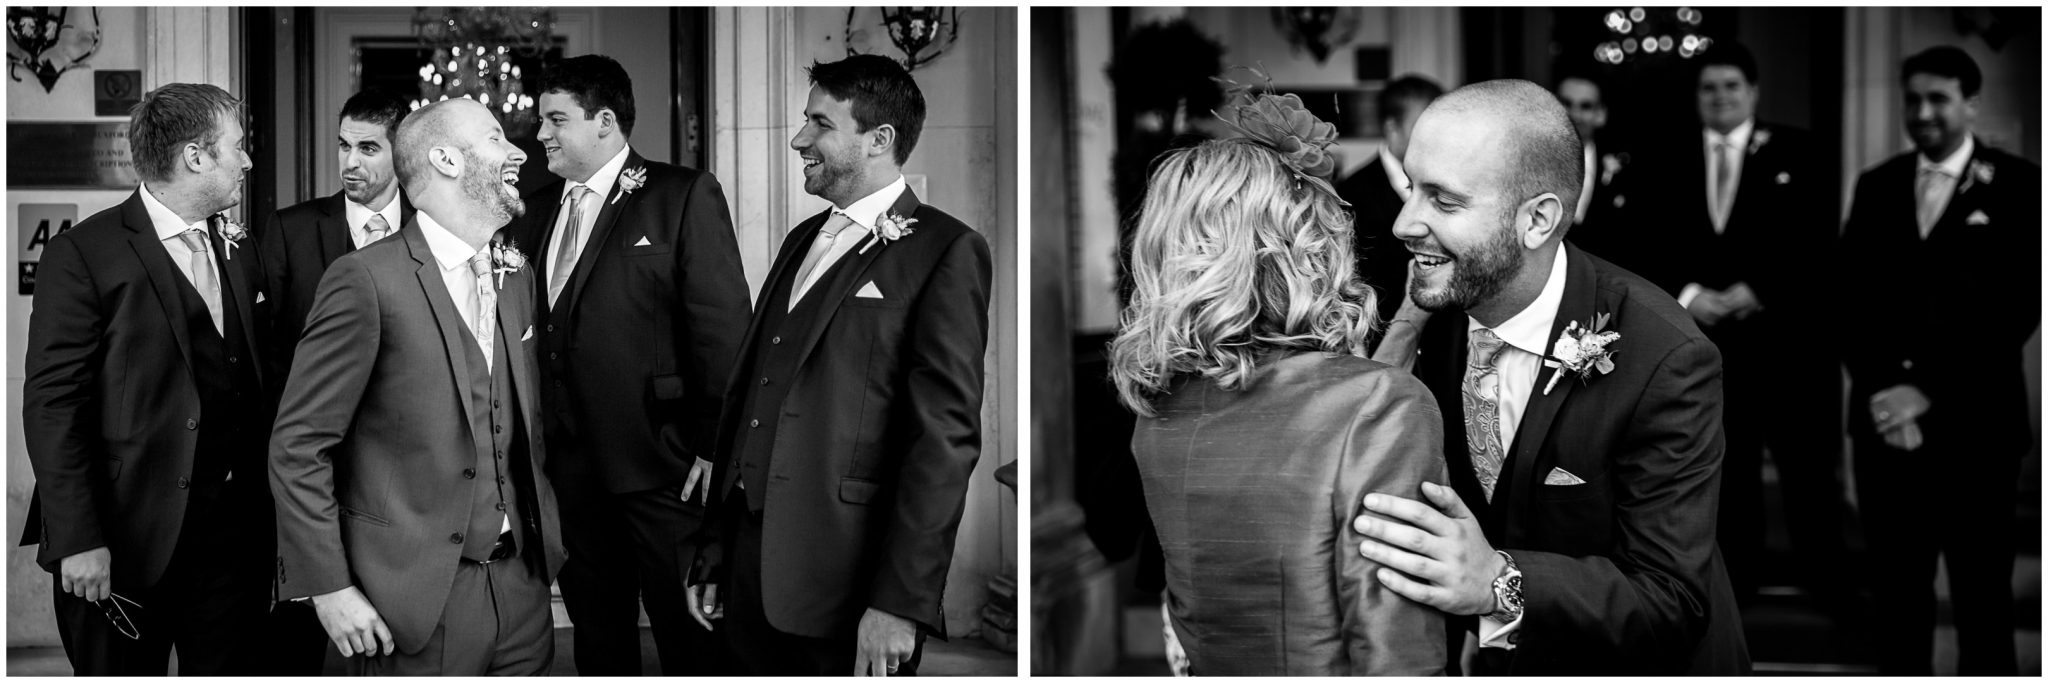 Oakley Hall wedding photography groom greeting arriving guests